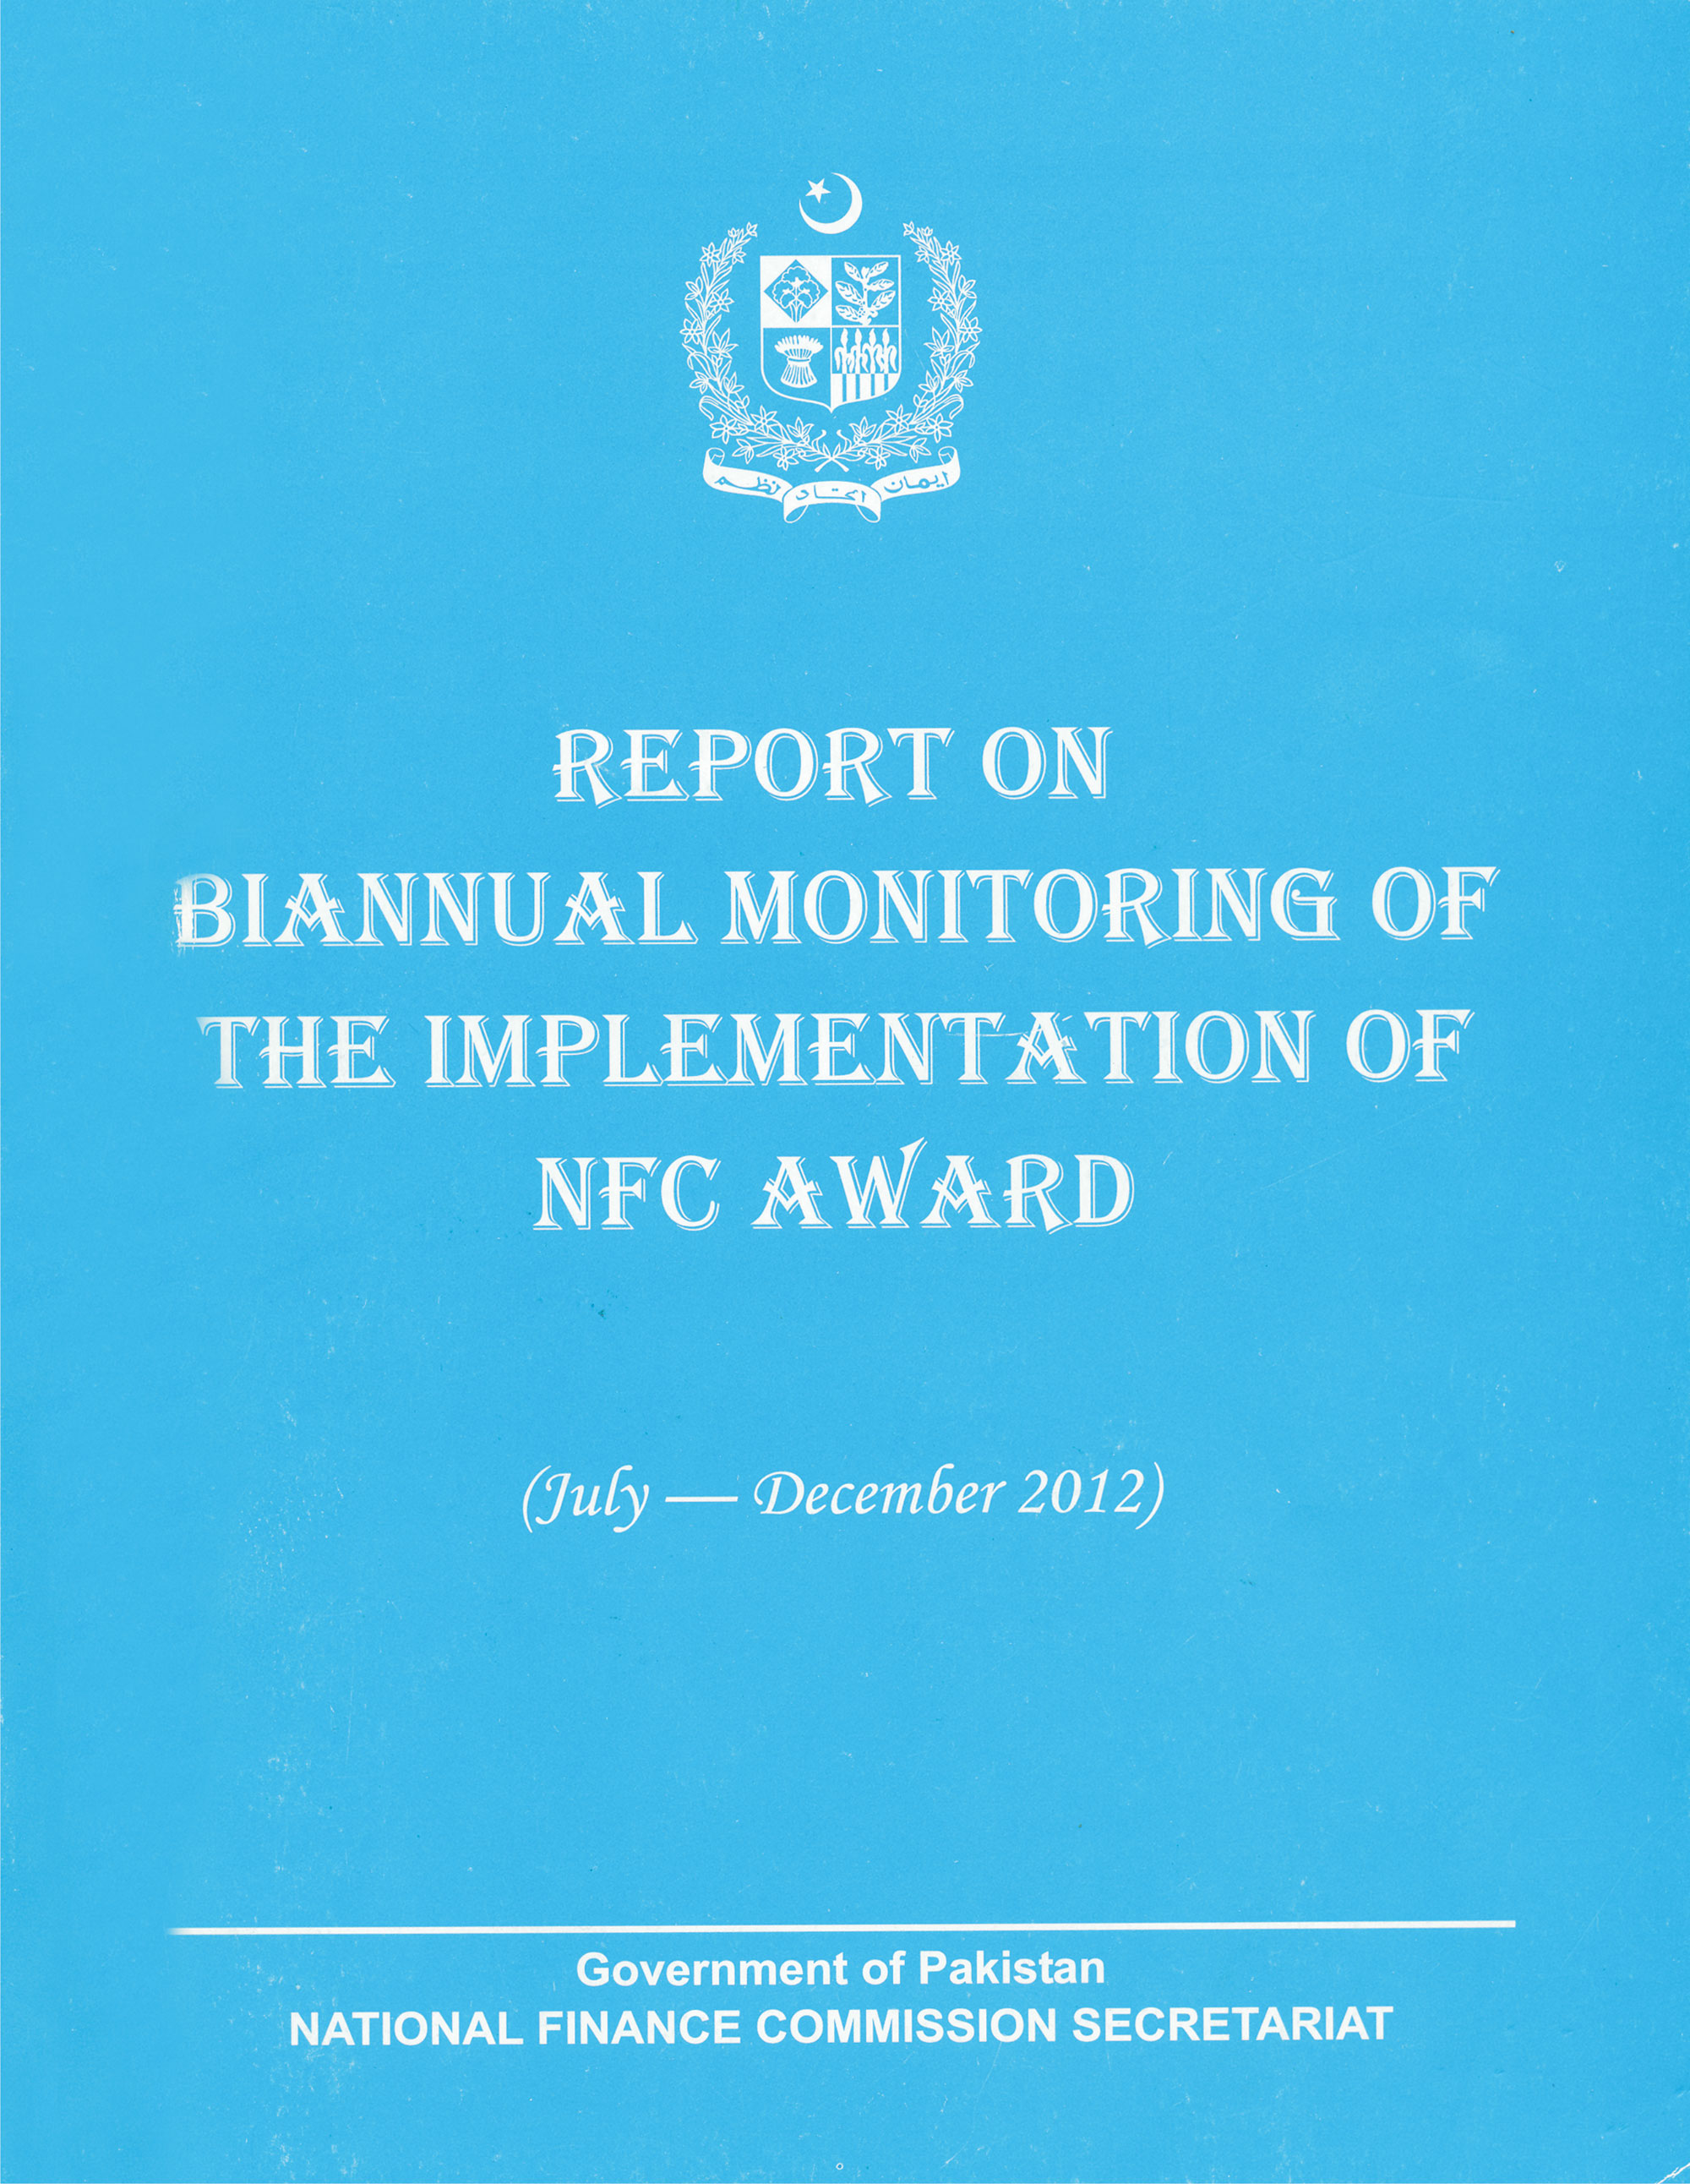 Review of report on the implementation of NFC Award